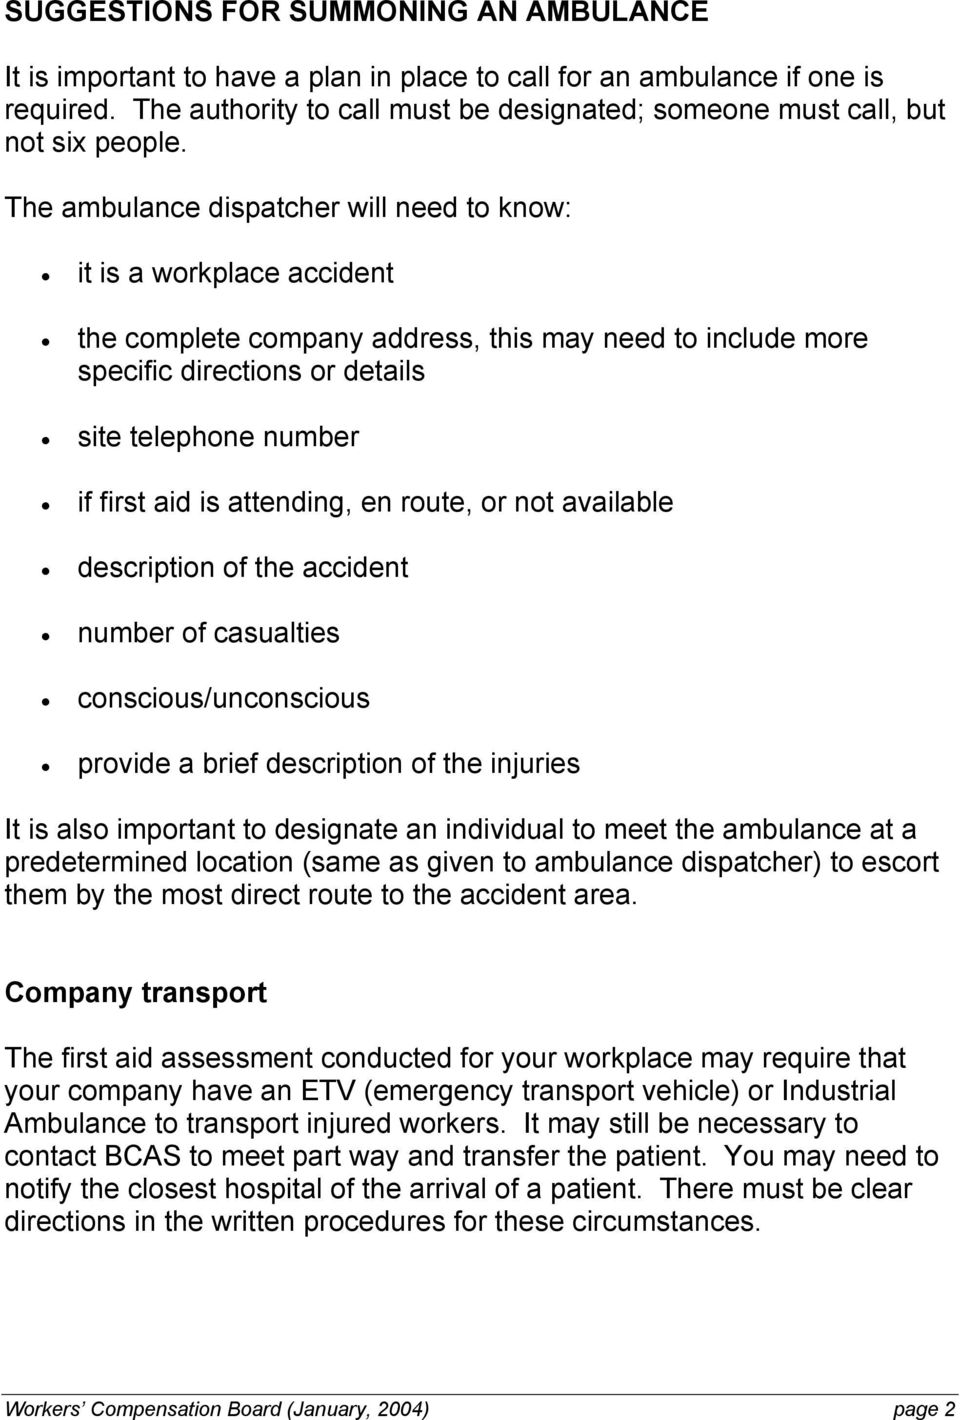 The ambulance dispatcher will need to know: it is a workplace accident the complete company address, this may need to include more specific directions or details site telephone number if first aid is